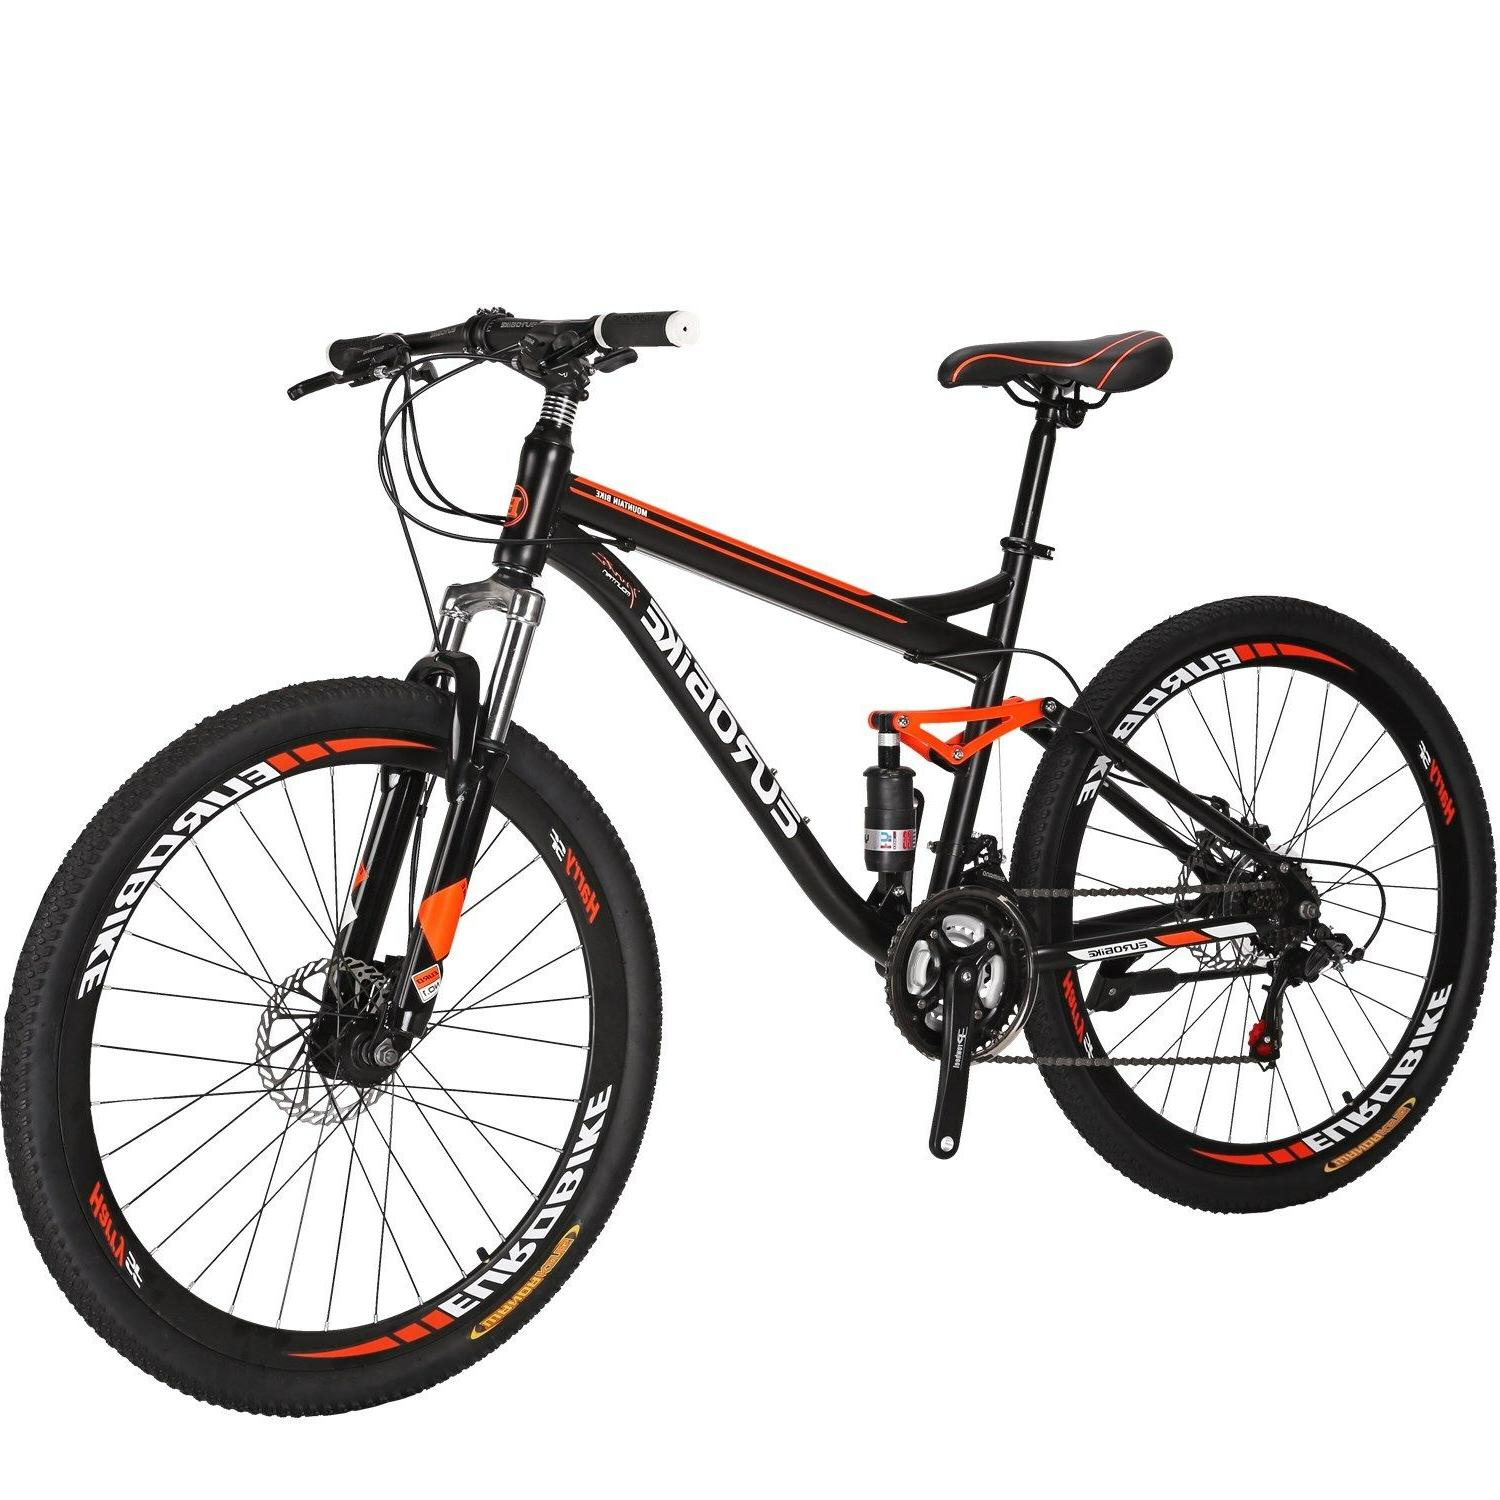 "27.5"" Full Suspension Bike 21 Speed Men's Bikes"